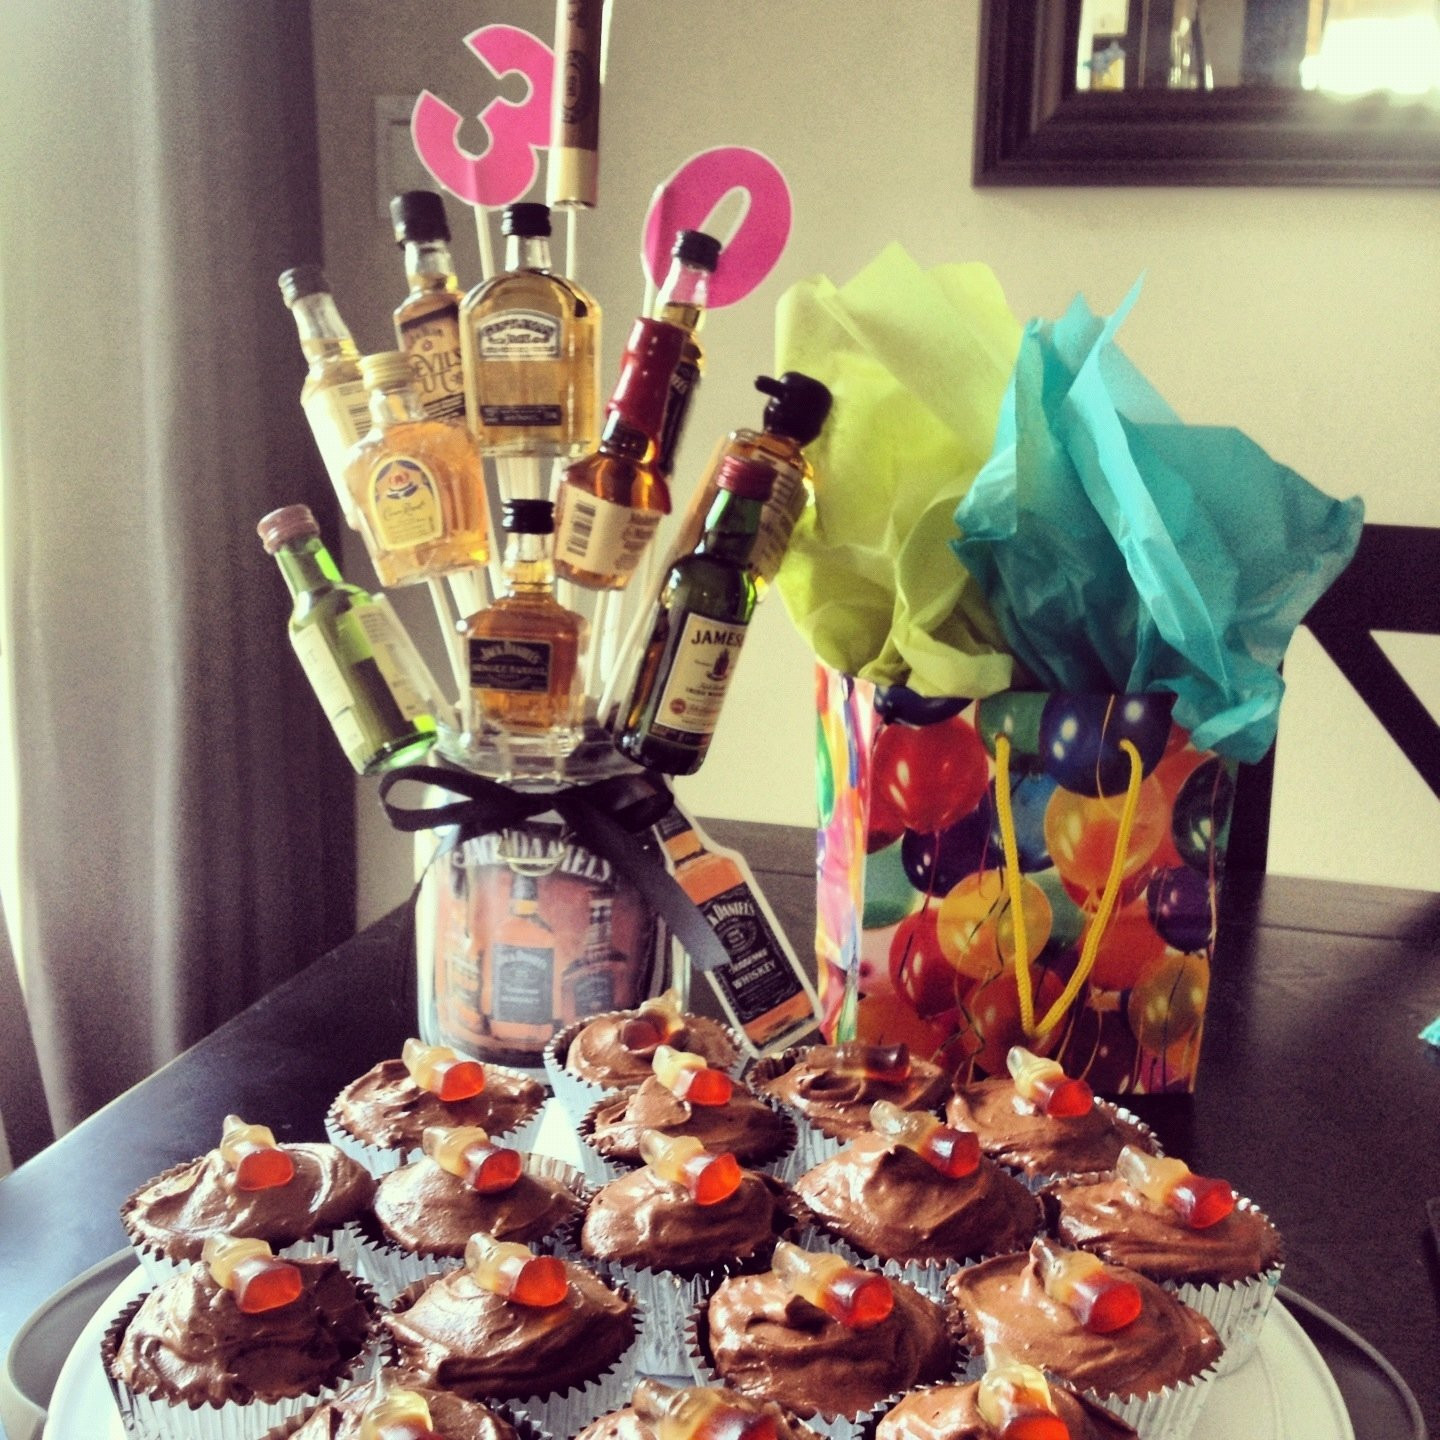 30Th Birthday Gift Ideas For Him  10 Famous Male 30Th Birthday Party Ideas 2019